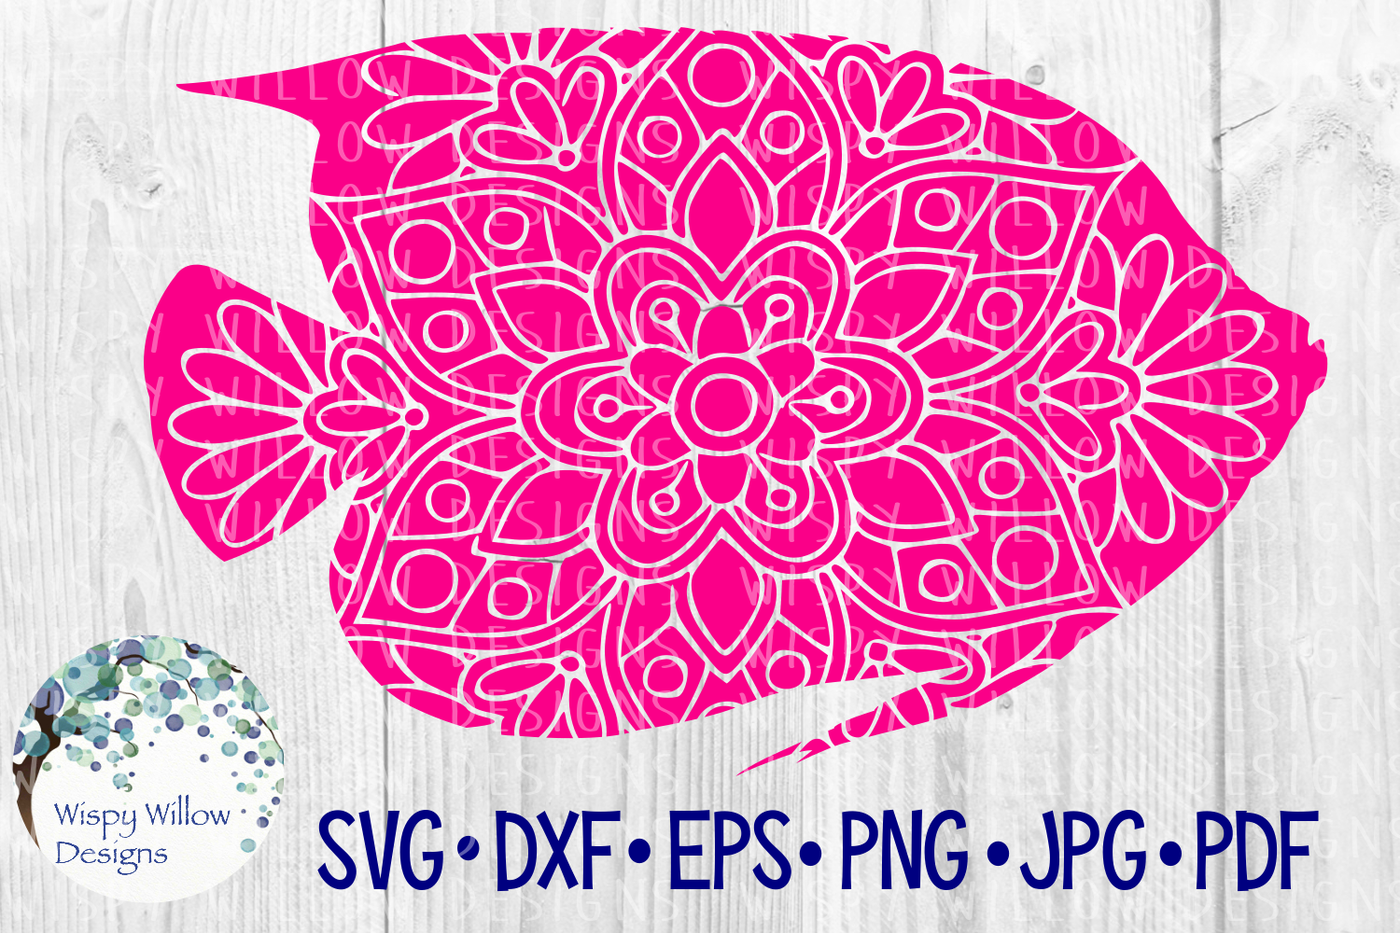 Fish Floral Mandala Animal Zentangle Svg Dxf Eps Png Jpg Pdf By